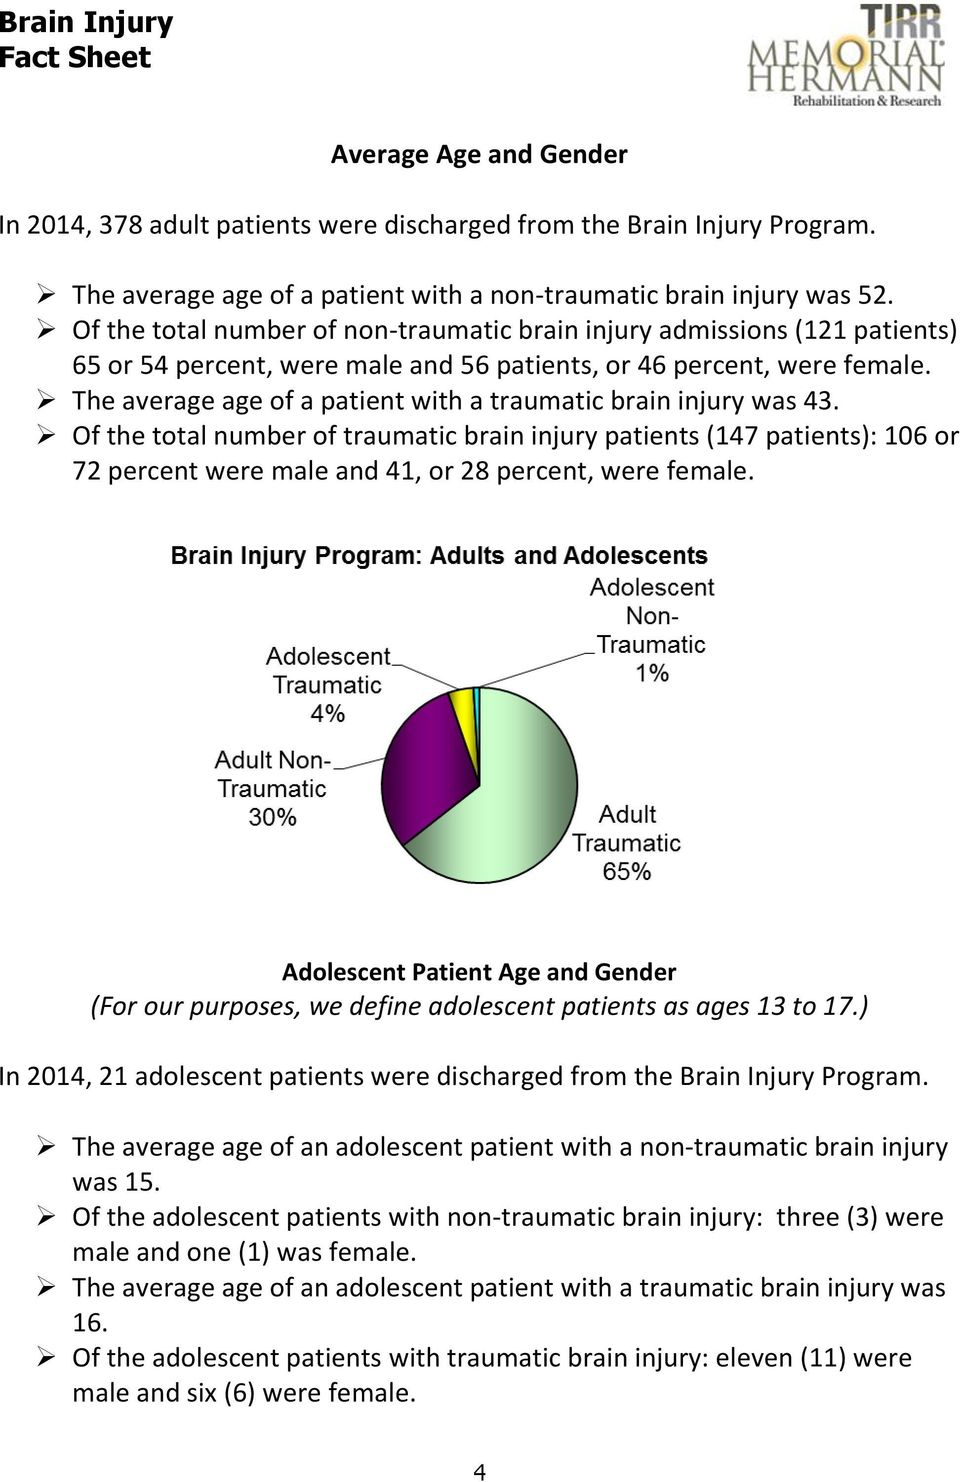 The average age of a patient with a traumatic brain injury was 43.